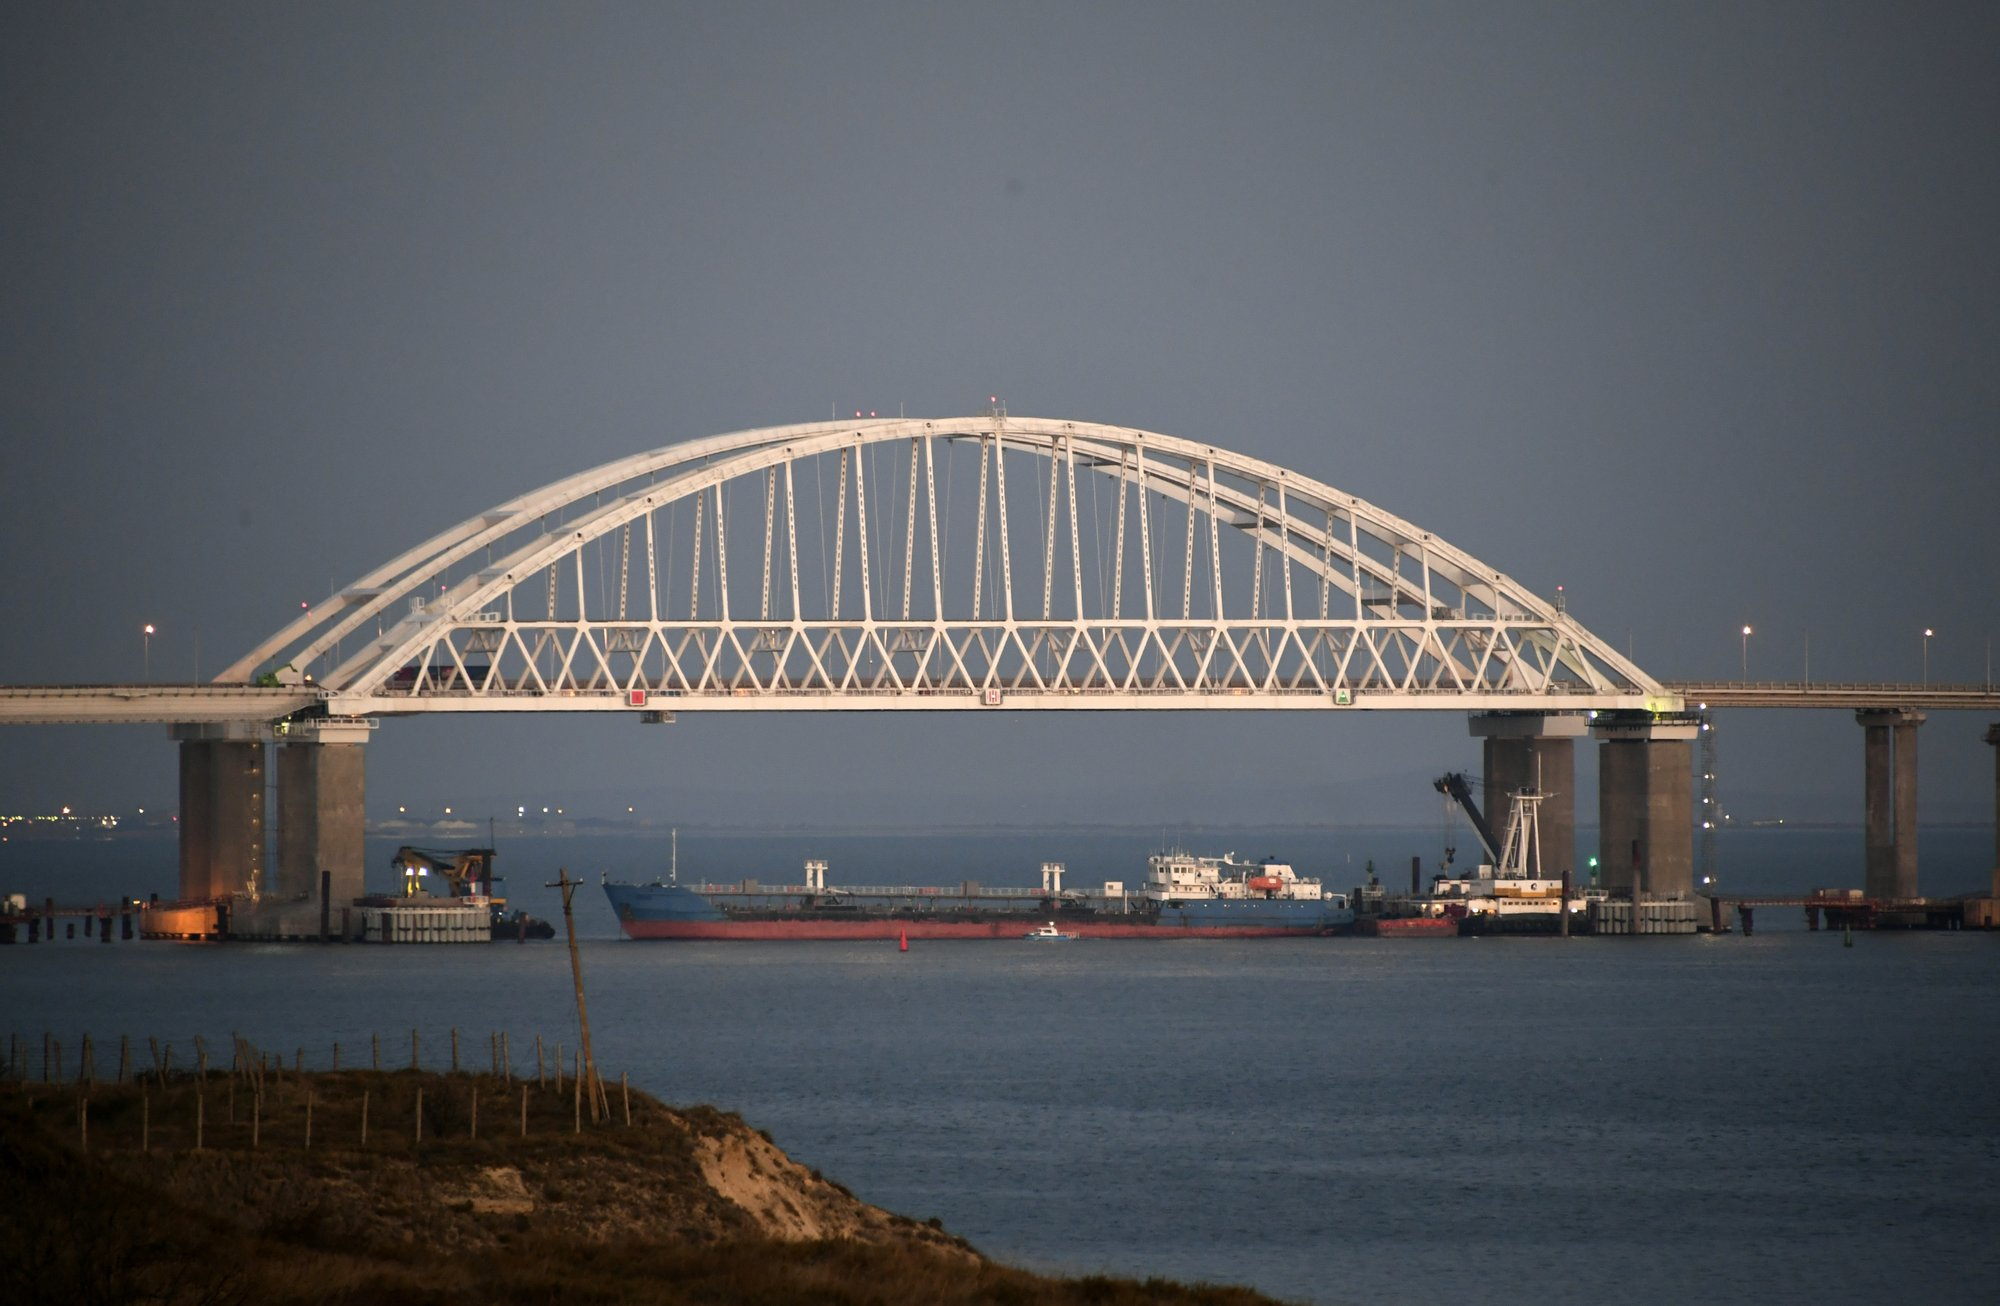 Moscow confirms Russia shoots, holds 3 Ukrainian naval ships in Black Sea